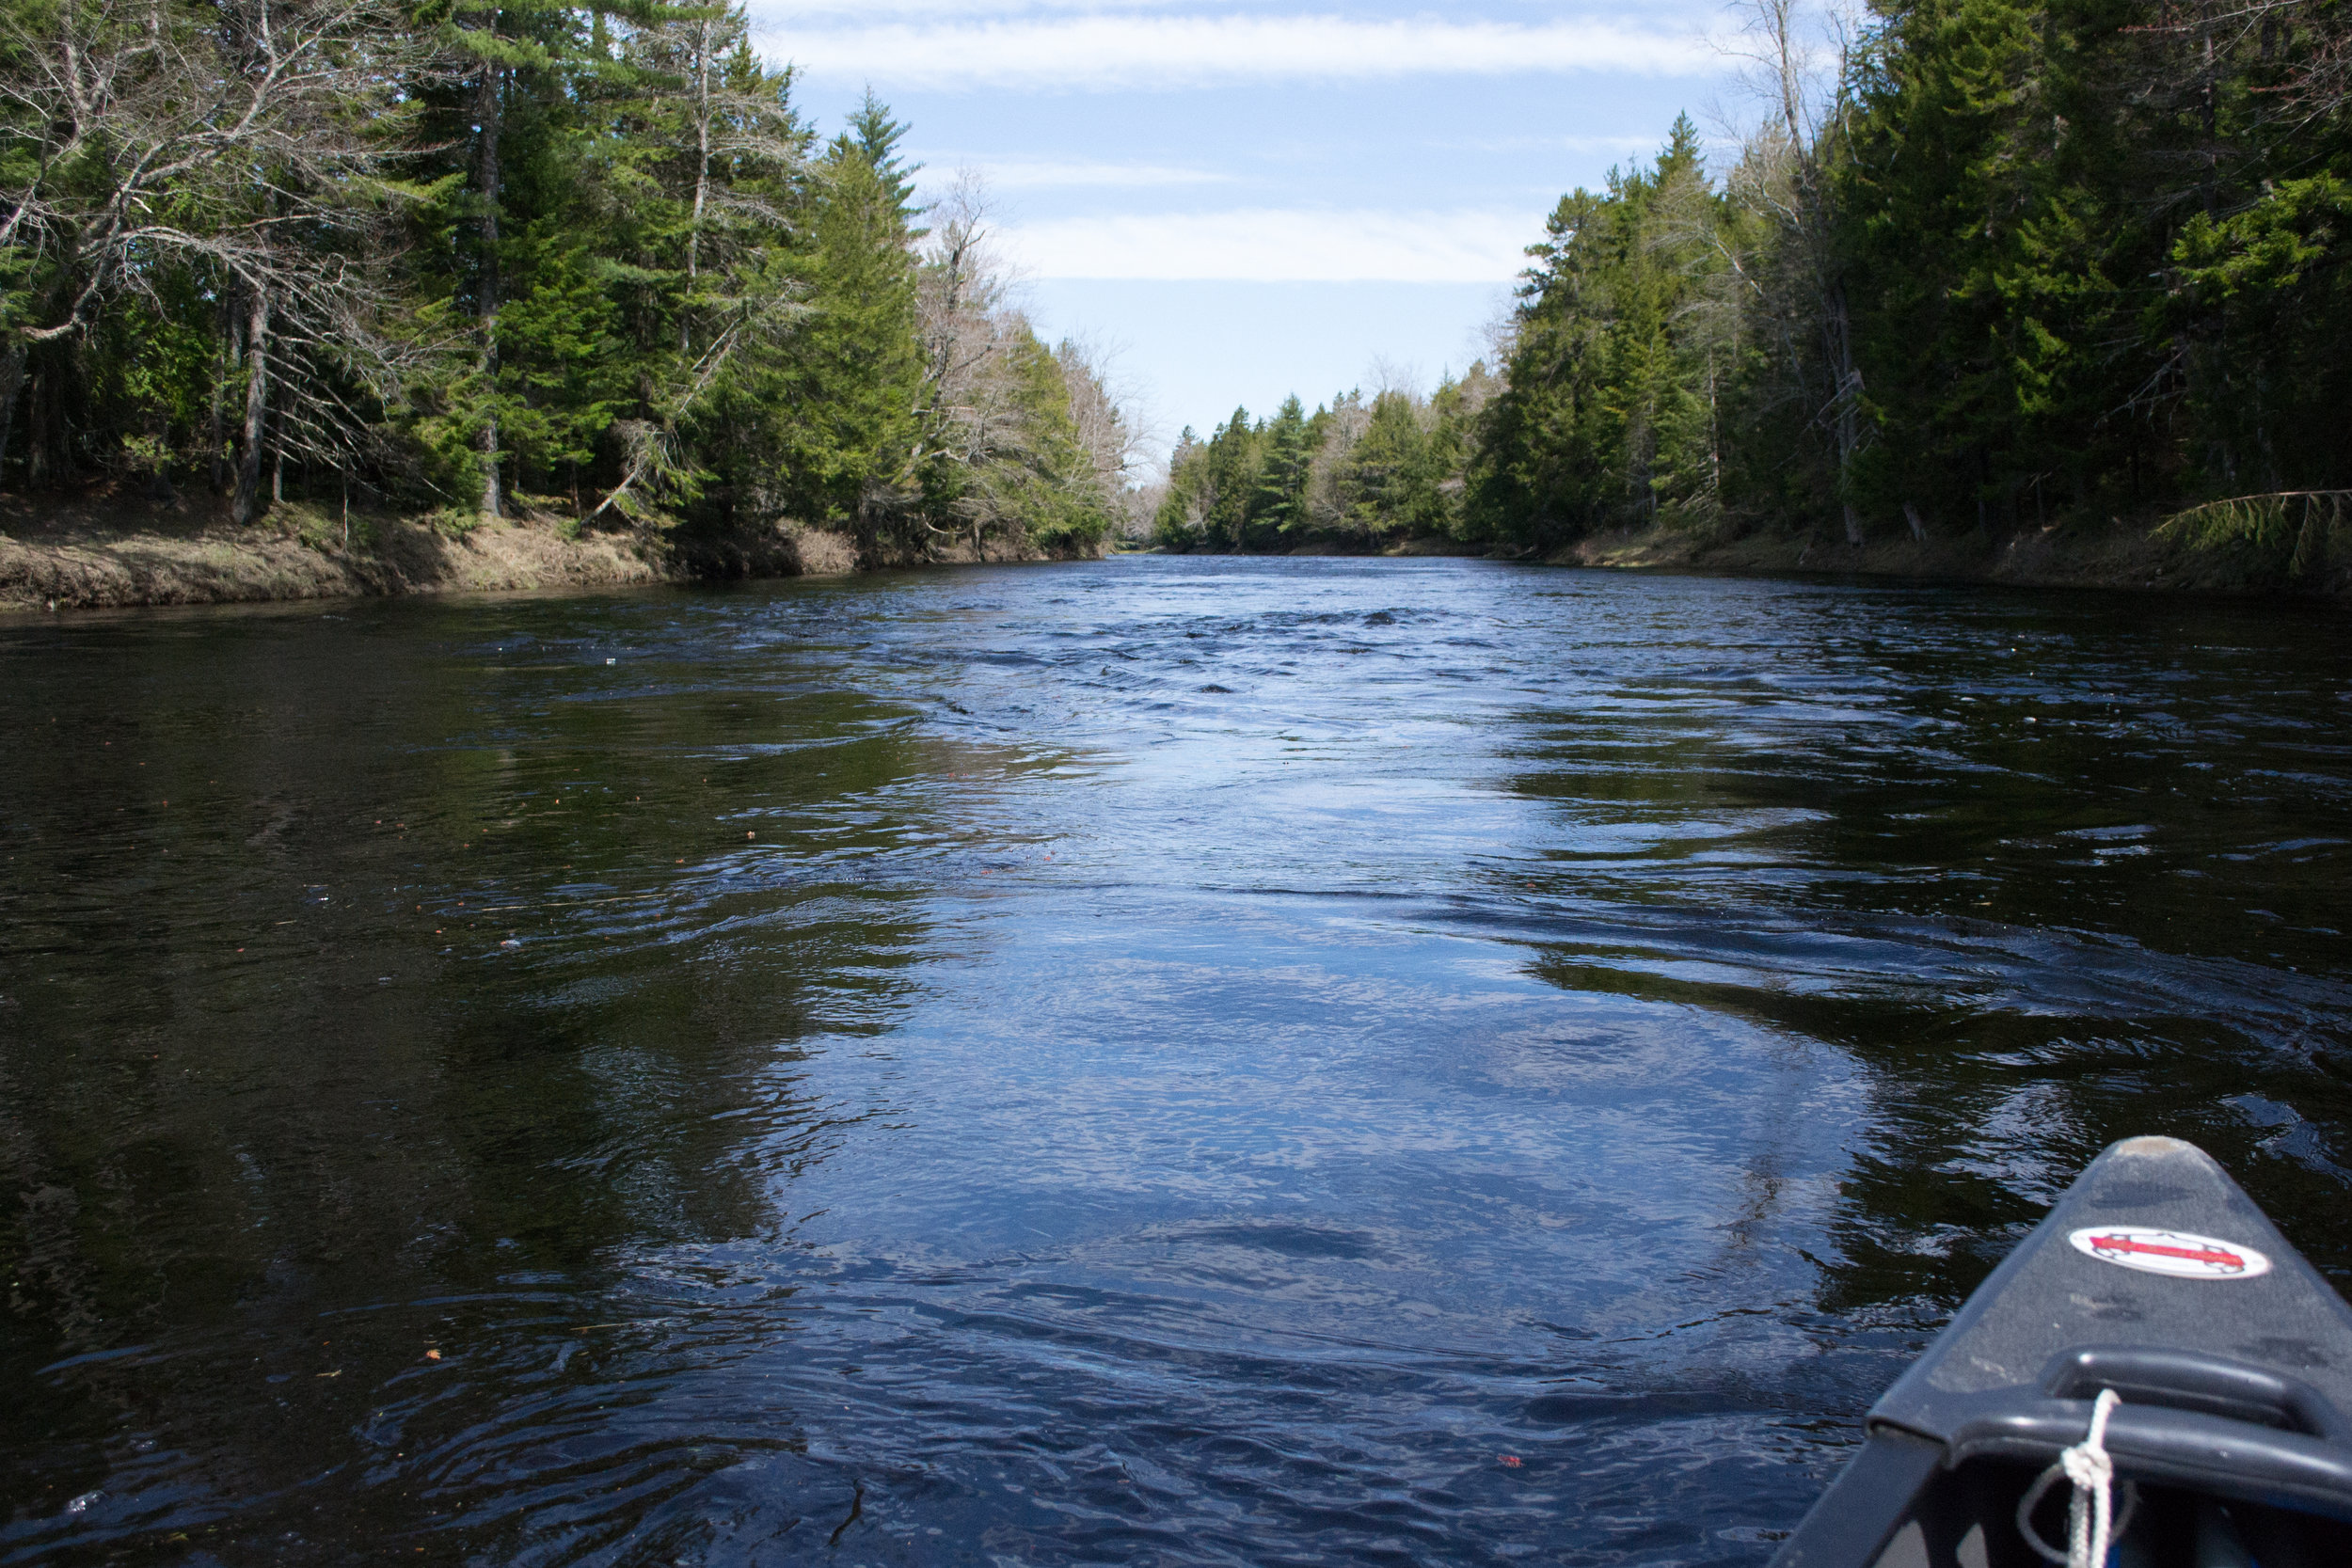 Paddling the Machias River in early May. Photo courtesy of H. Stark.